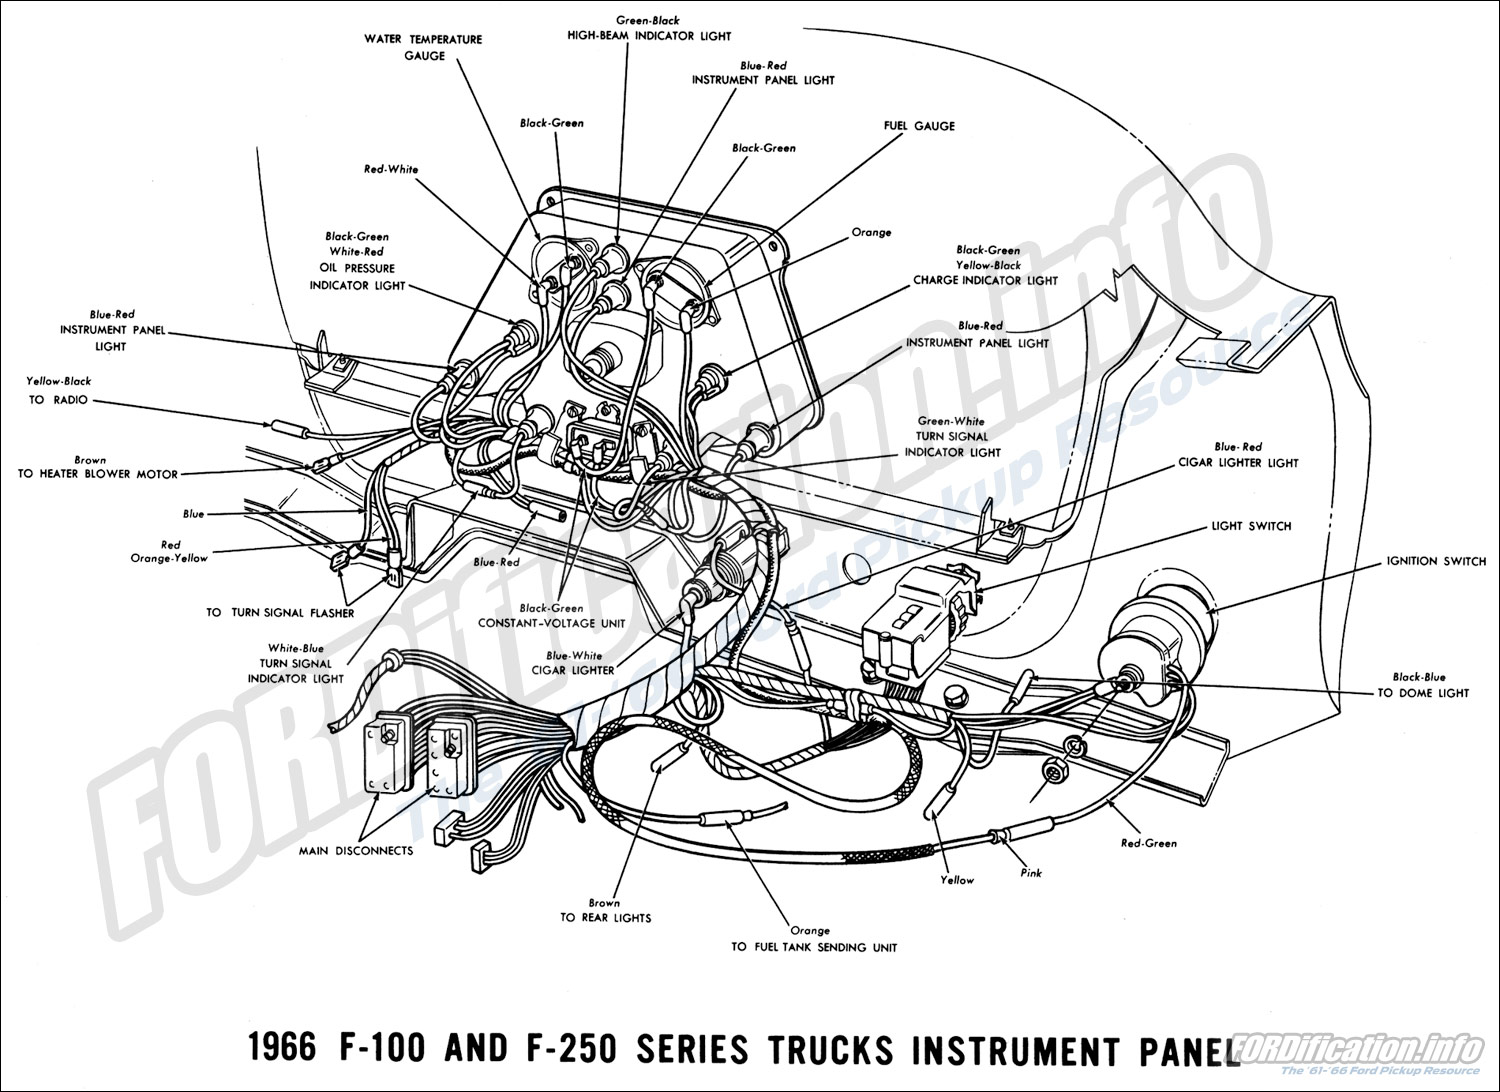 66instrumentpanel 1966 ford truck wiring diagrams fordification info the '61 '66 fordification wiring diagram at virtualis.co